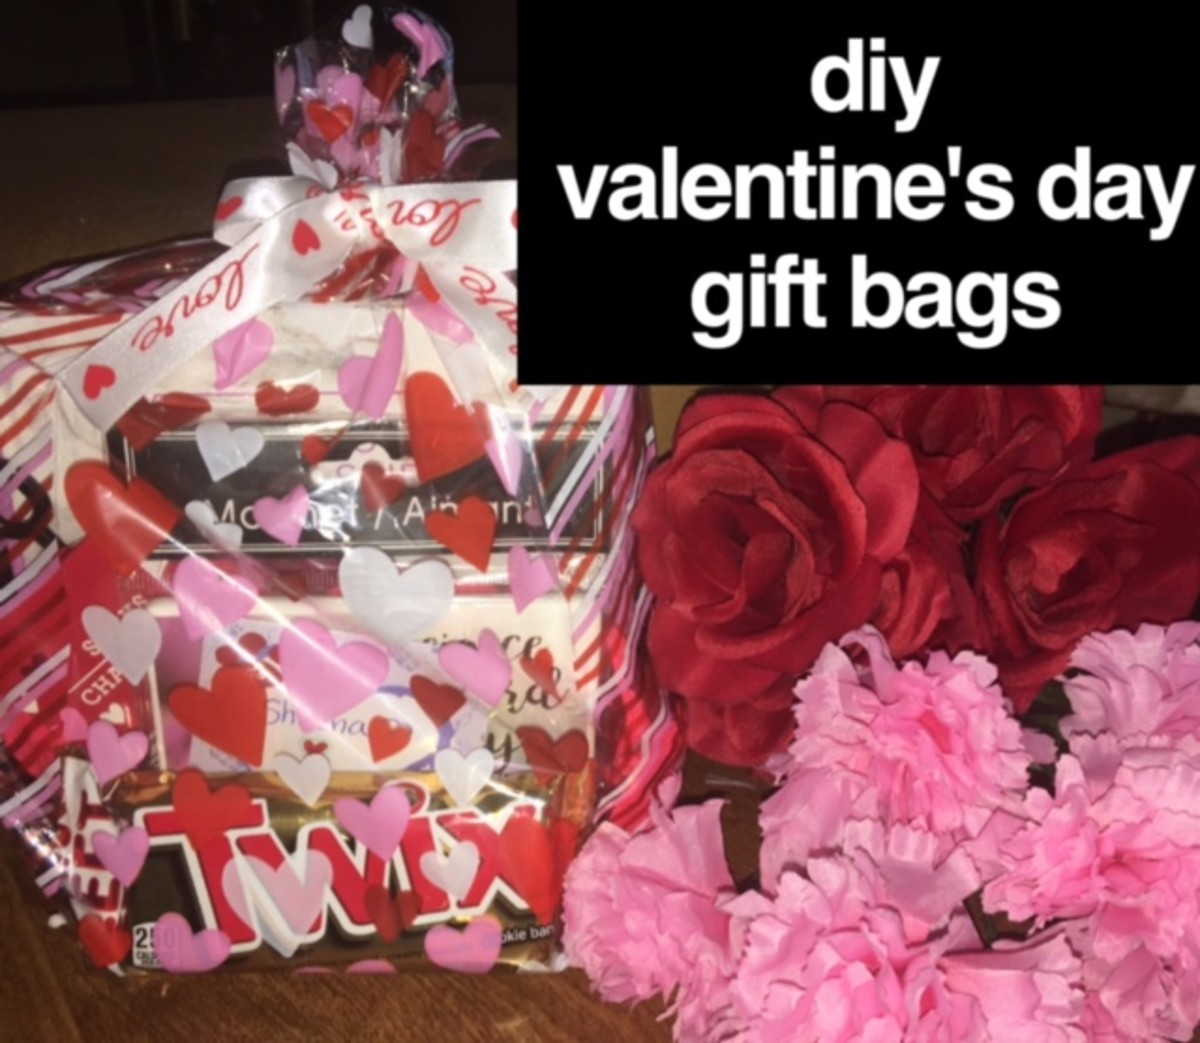 How to Create Valentine's Day Gift Bags for Your Friends (Using Dollar Tree Items!)